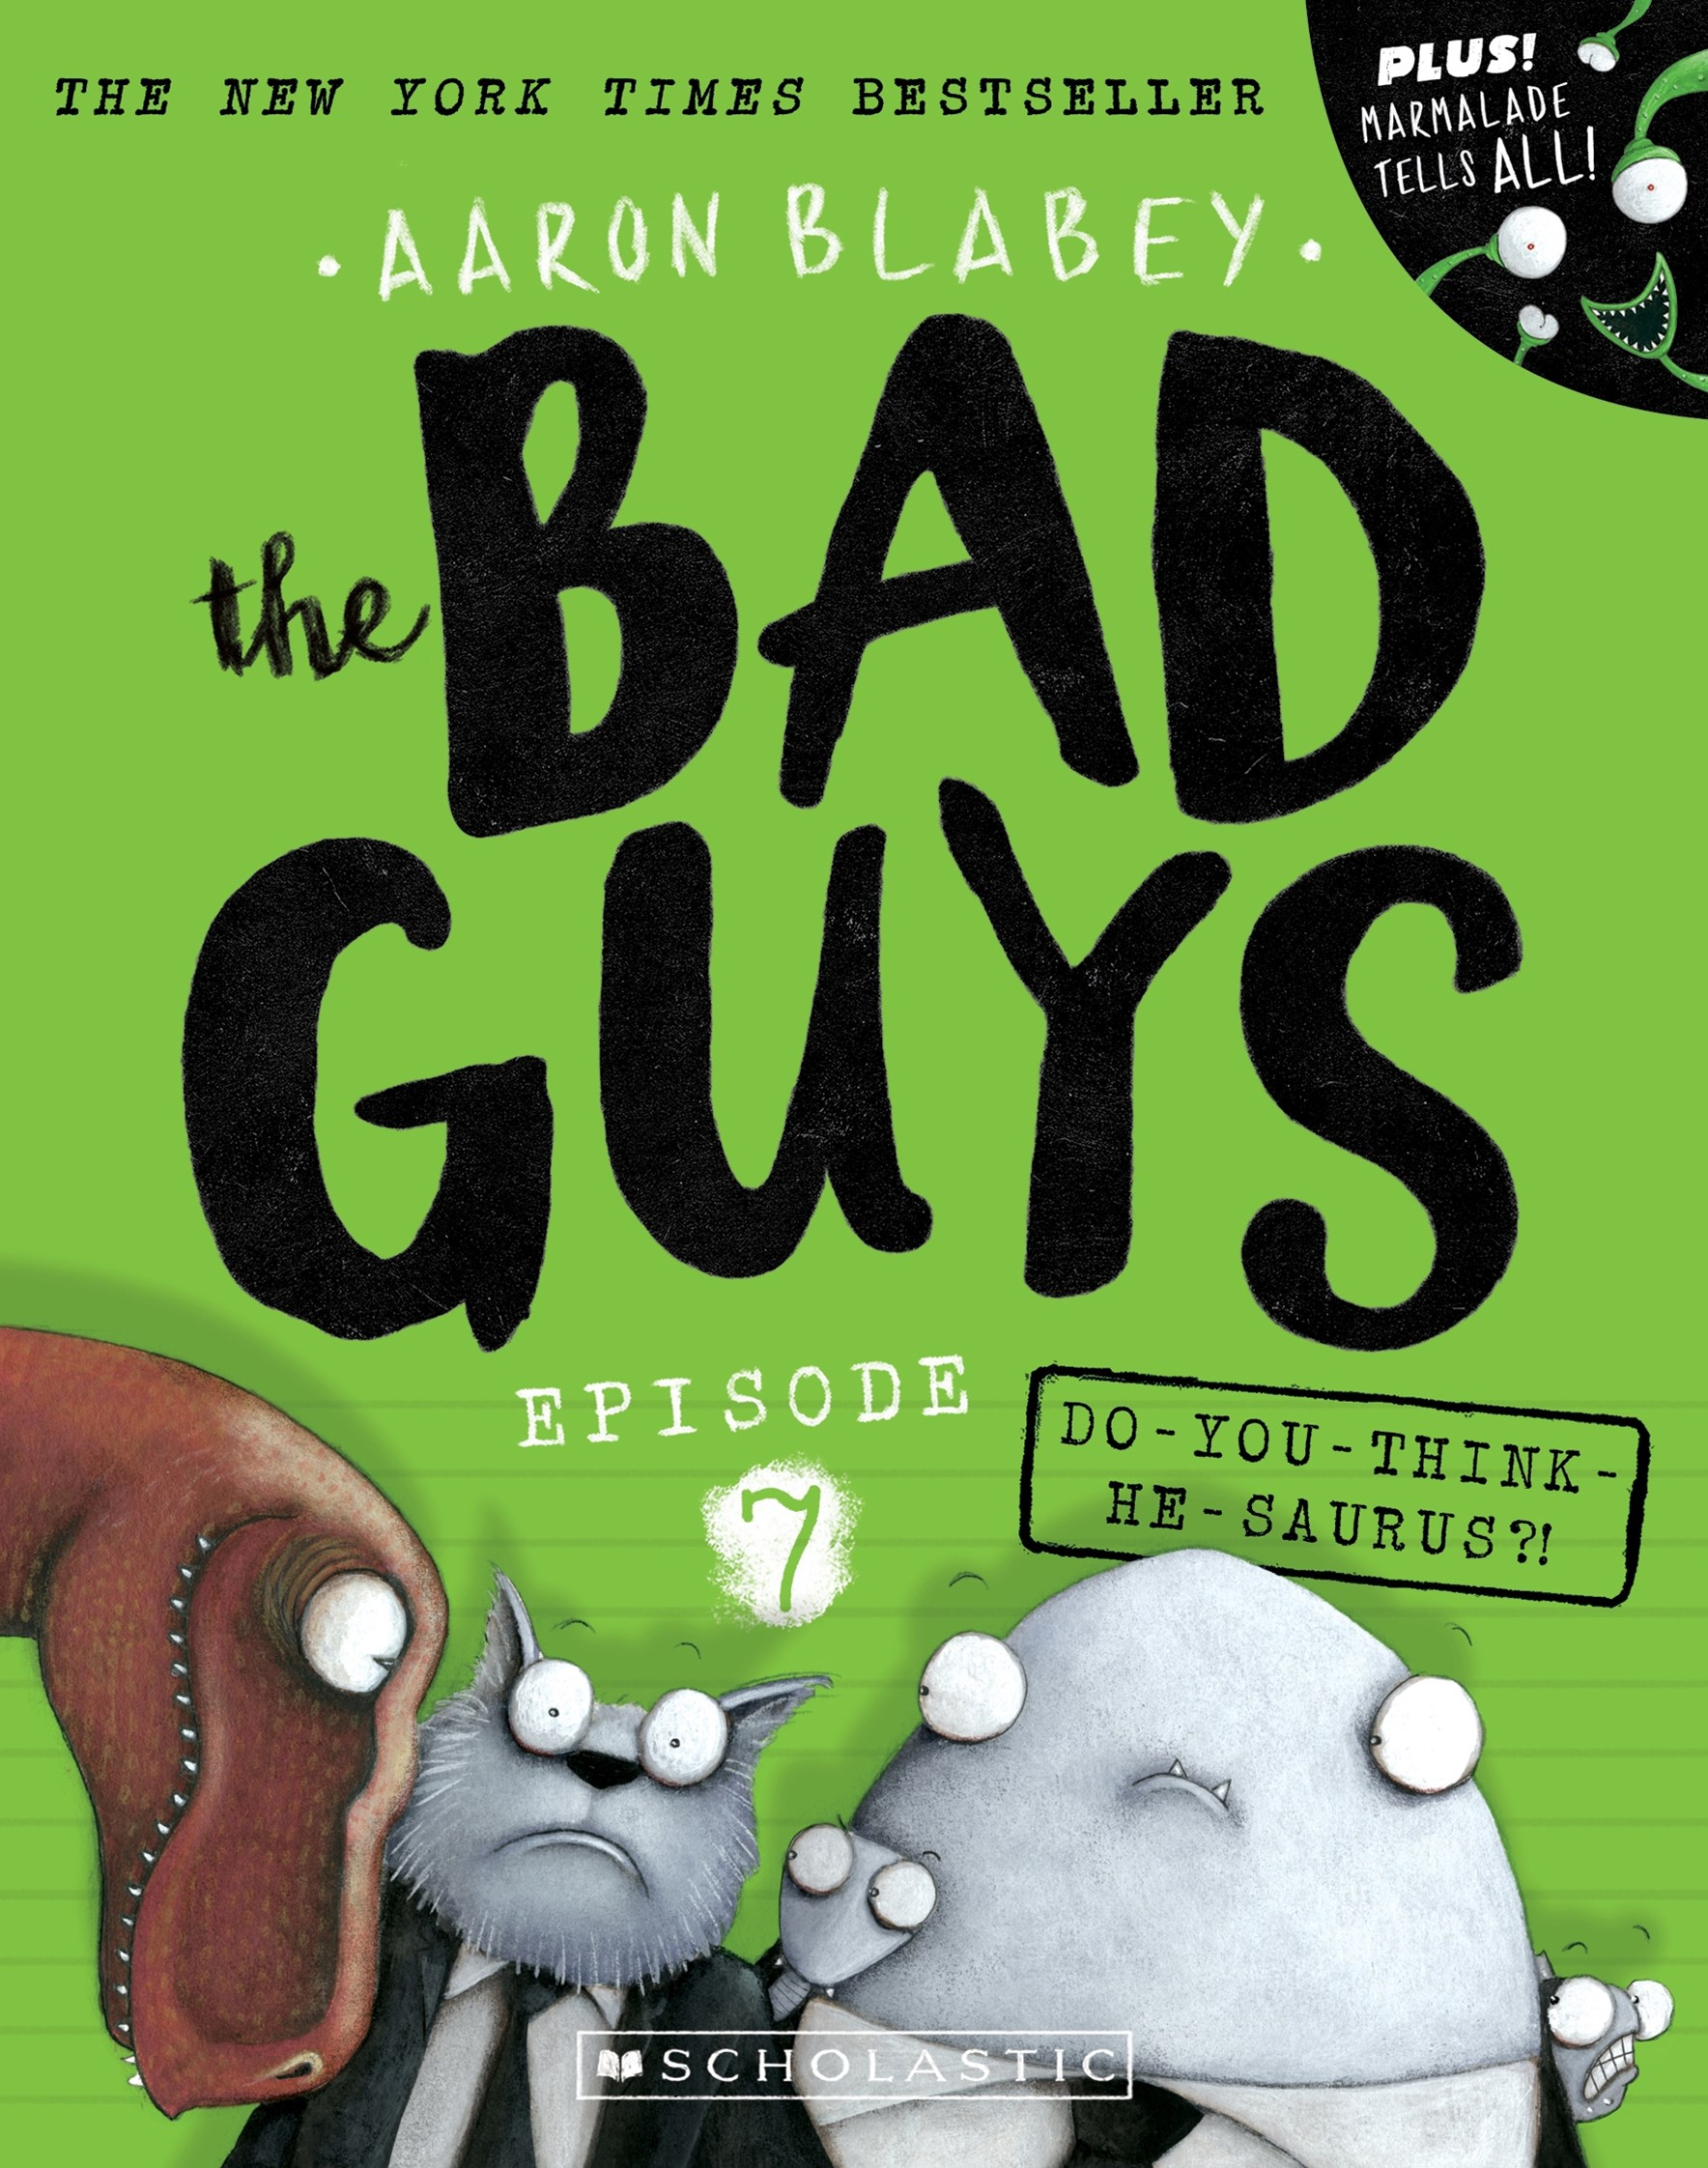 Bad Guys Episode 7: Do you think he saurus?!